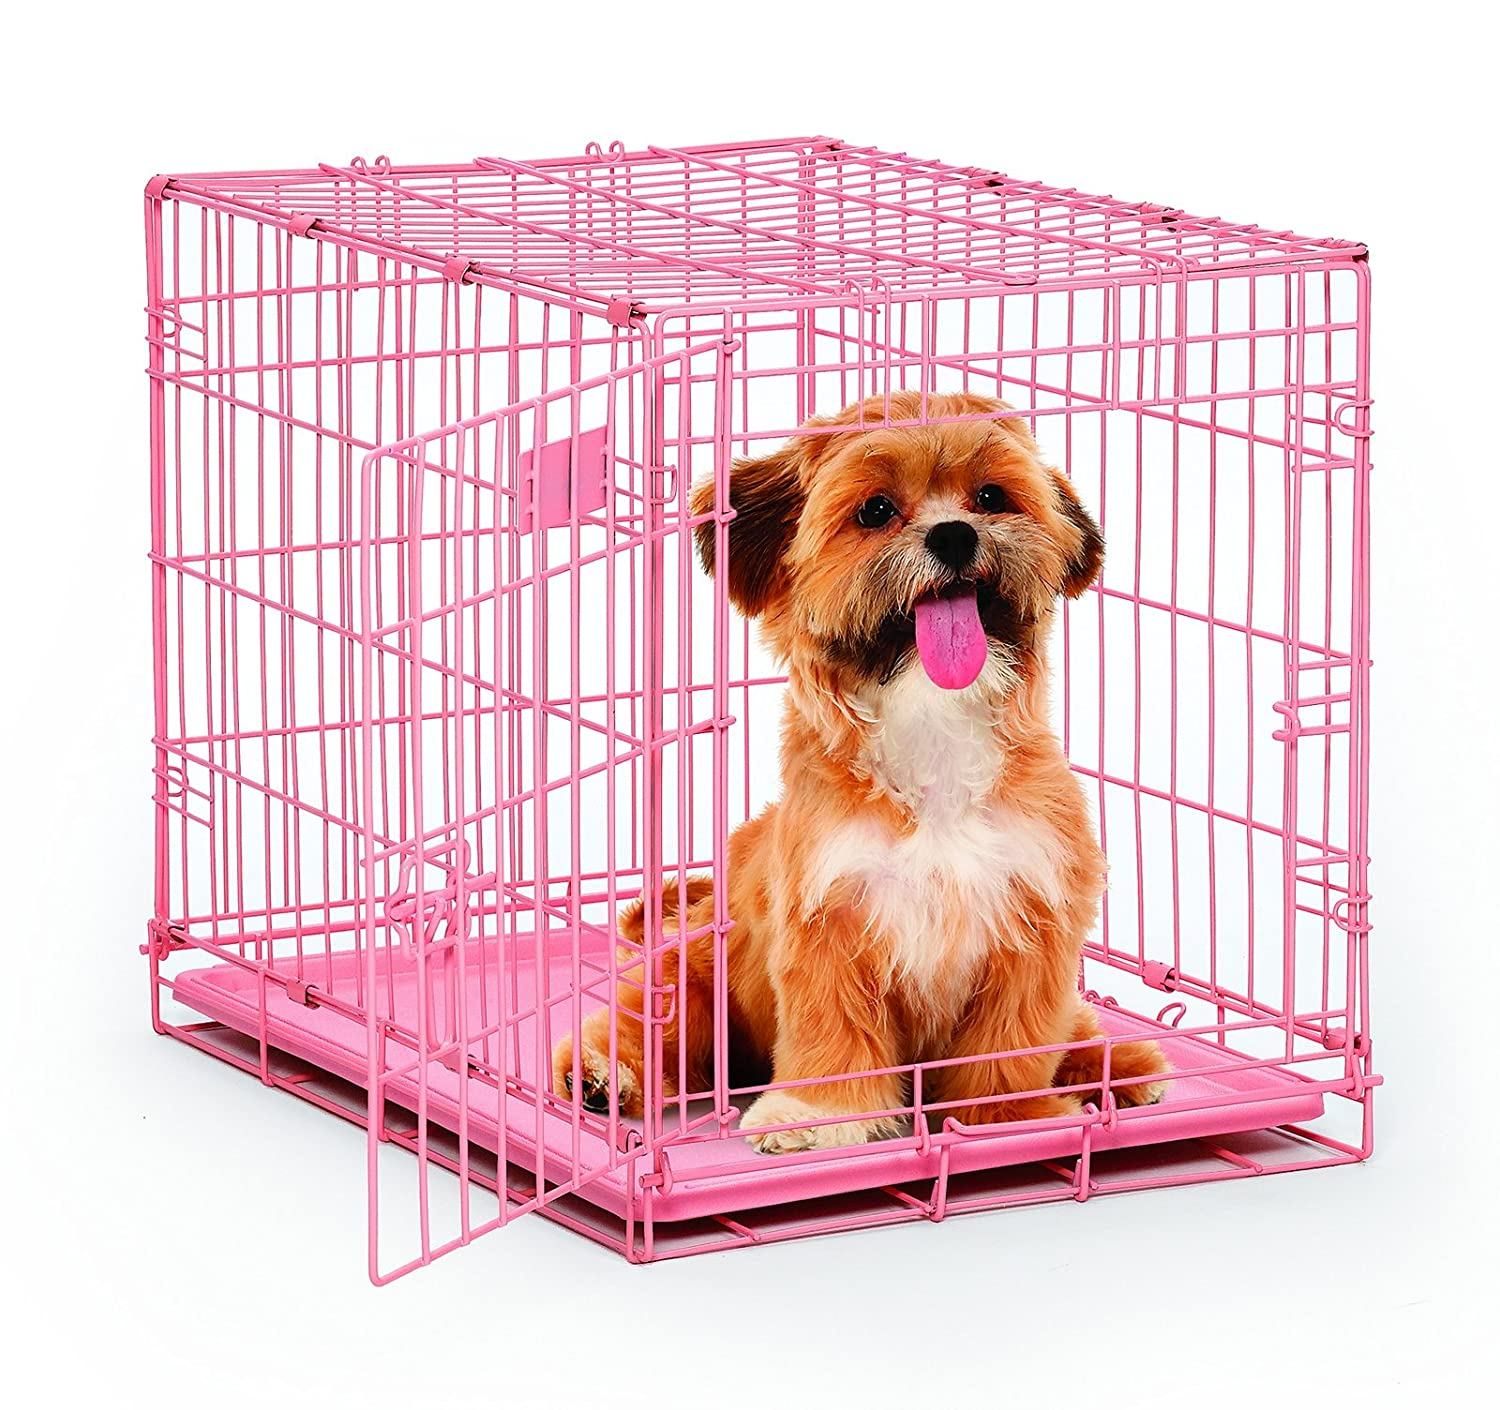 amazoncom  midwest  pink icrate folding metal dog crate w  - amazoncom  midwest  pink icrate folding metal dog crate w dividerpanel floor protecting roller feet  leak proof plastic tray l x wx h